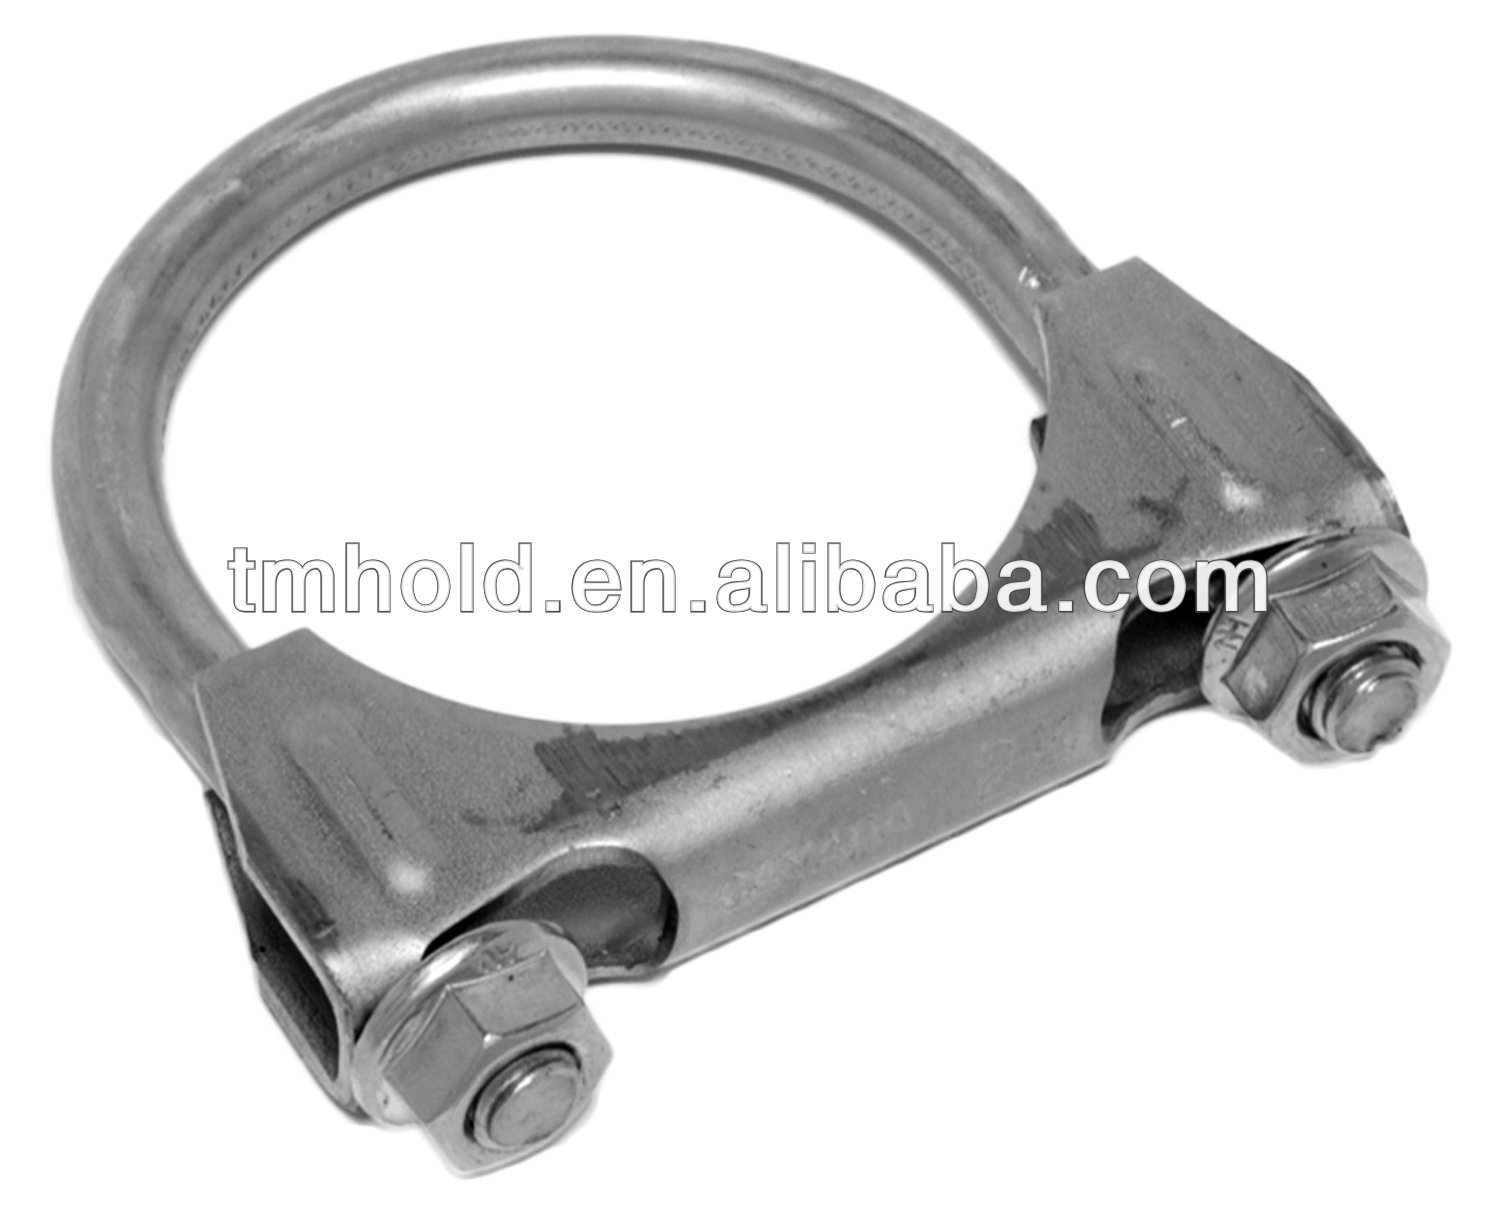 China Bolt Wire Clip, China Bolt Wire Clip Manufacturers and ...